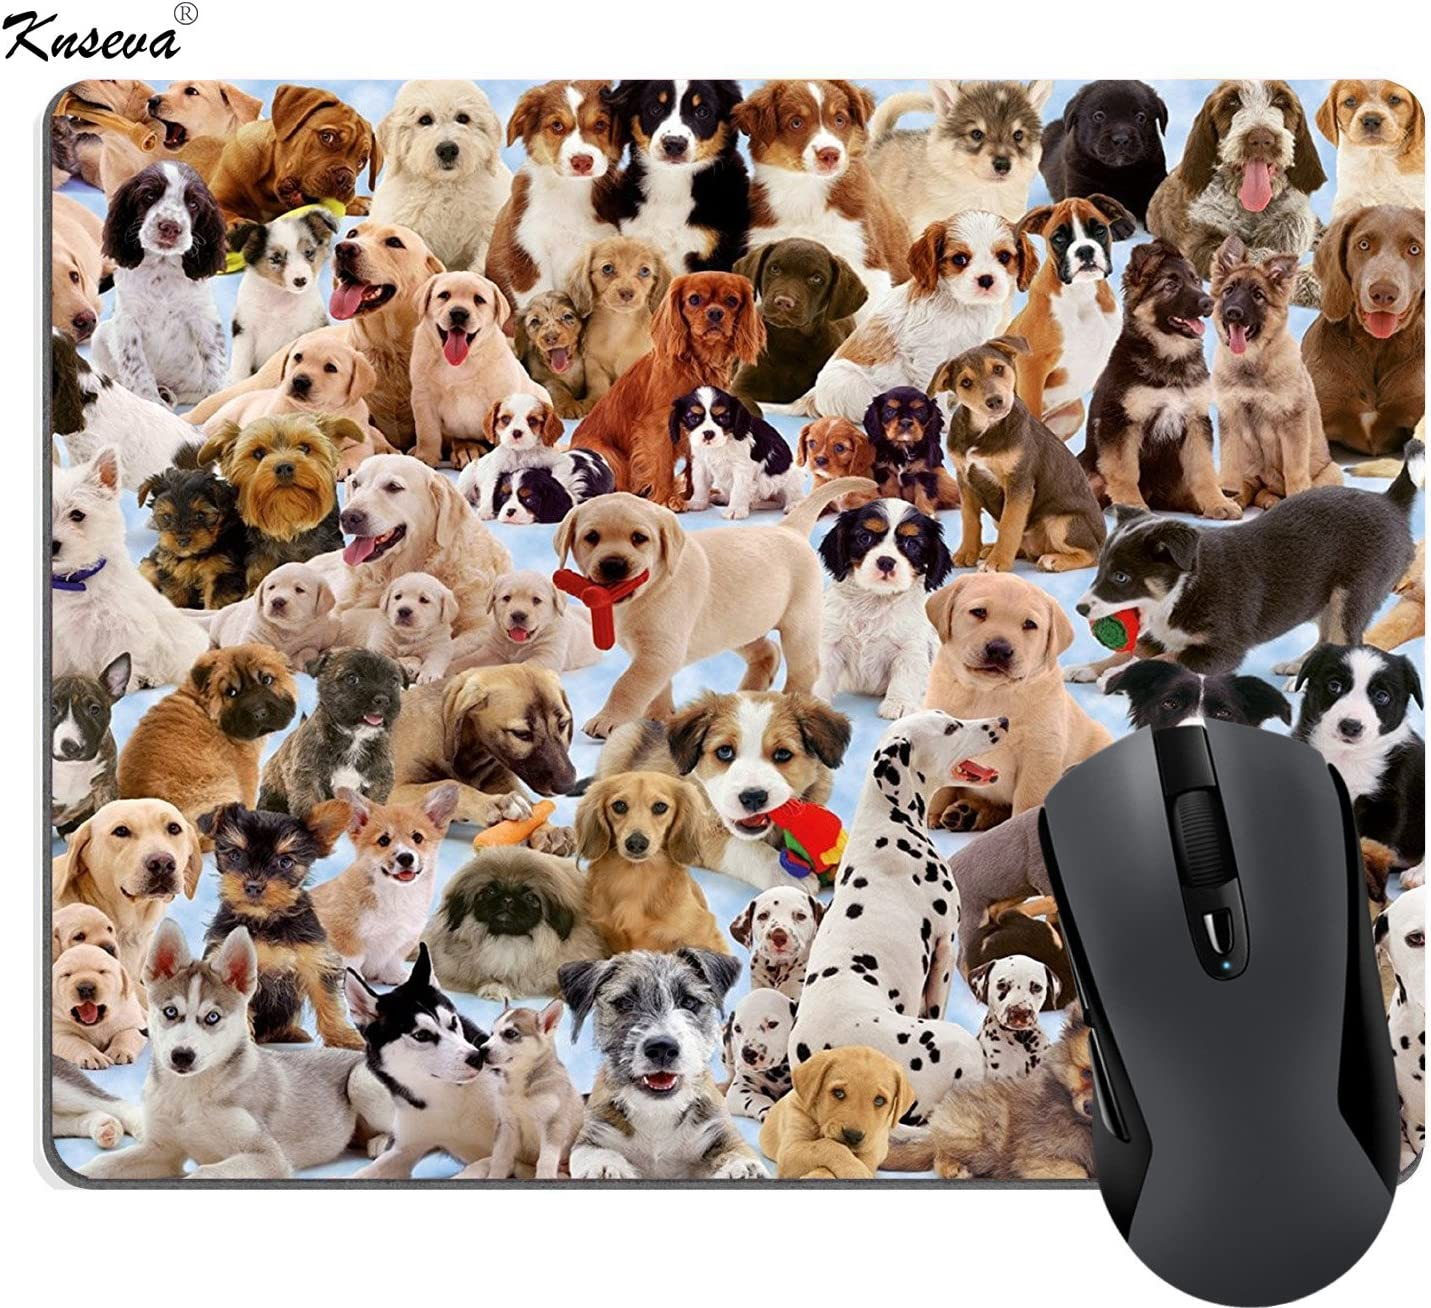 Dogs Galore Mouse Pad Custom Cute Pets Puppies Mouse Pads Large Funny Mat